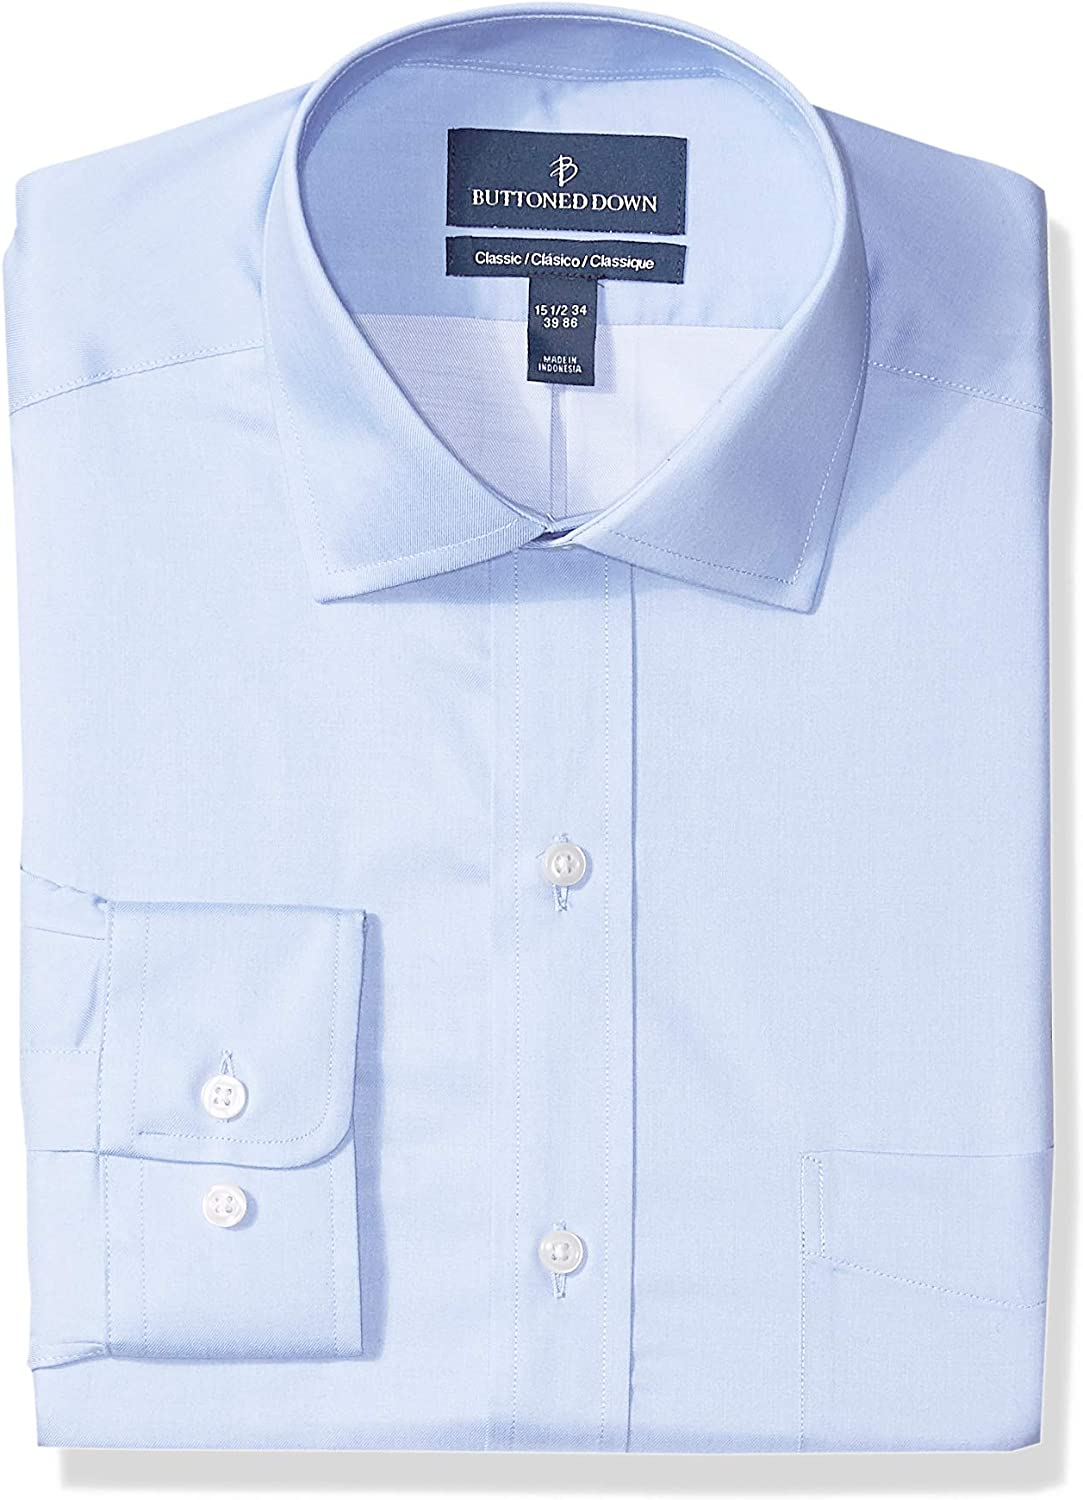 BUTTONED DOWN Mens Classic Fit Spread-Collar Supima Cotton Dress Casual Shirt Brand